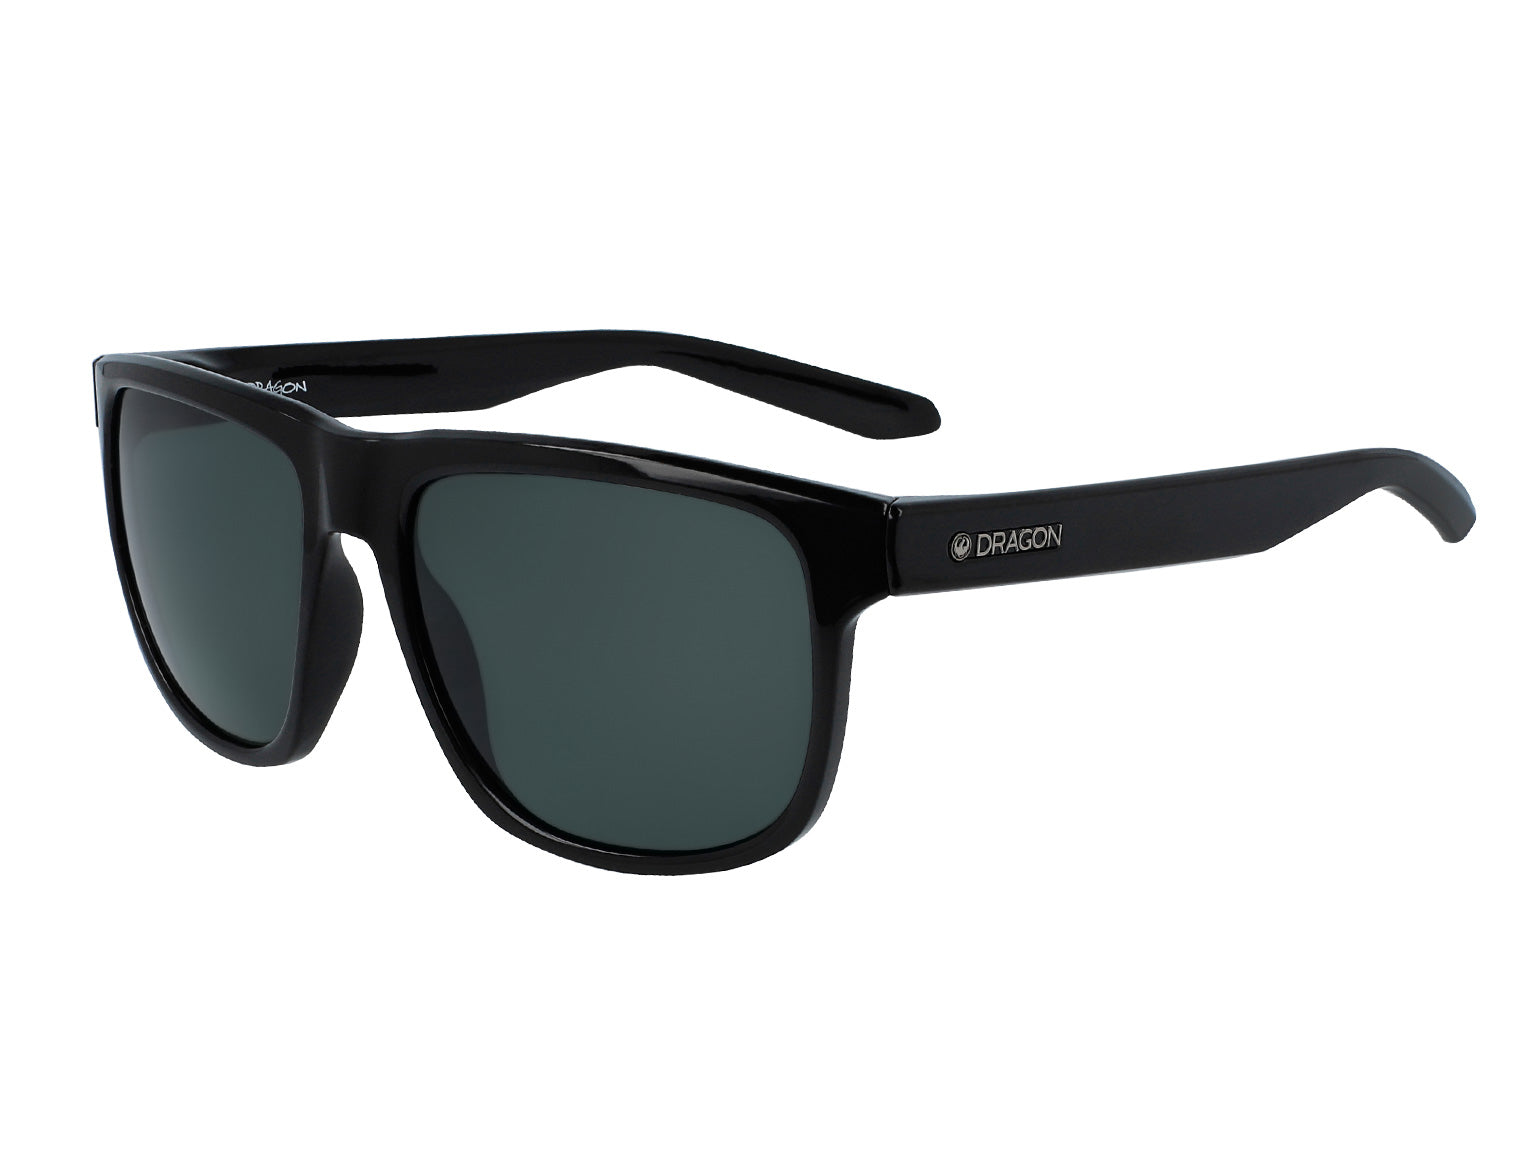 SESH - Shiny Black ; with Polarized Lumalens Smoke Lens